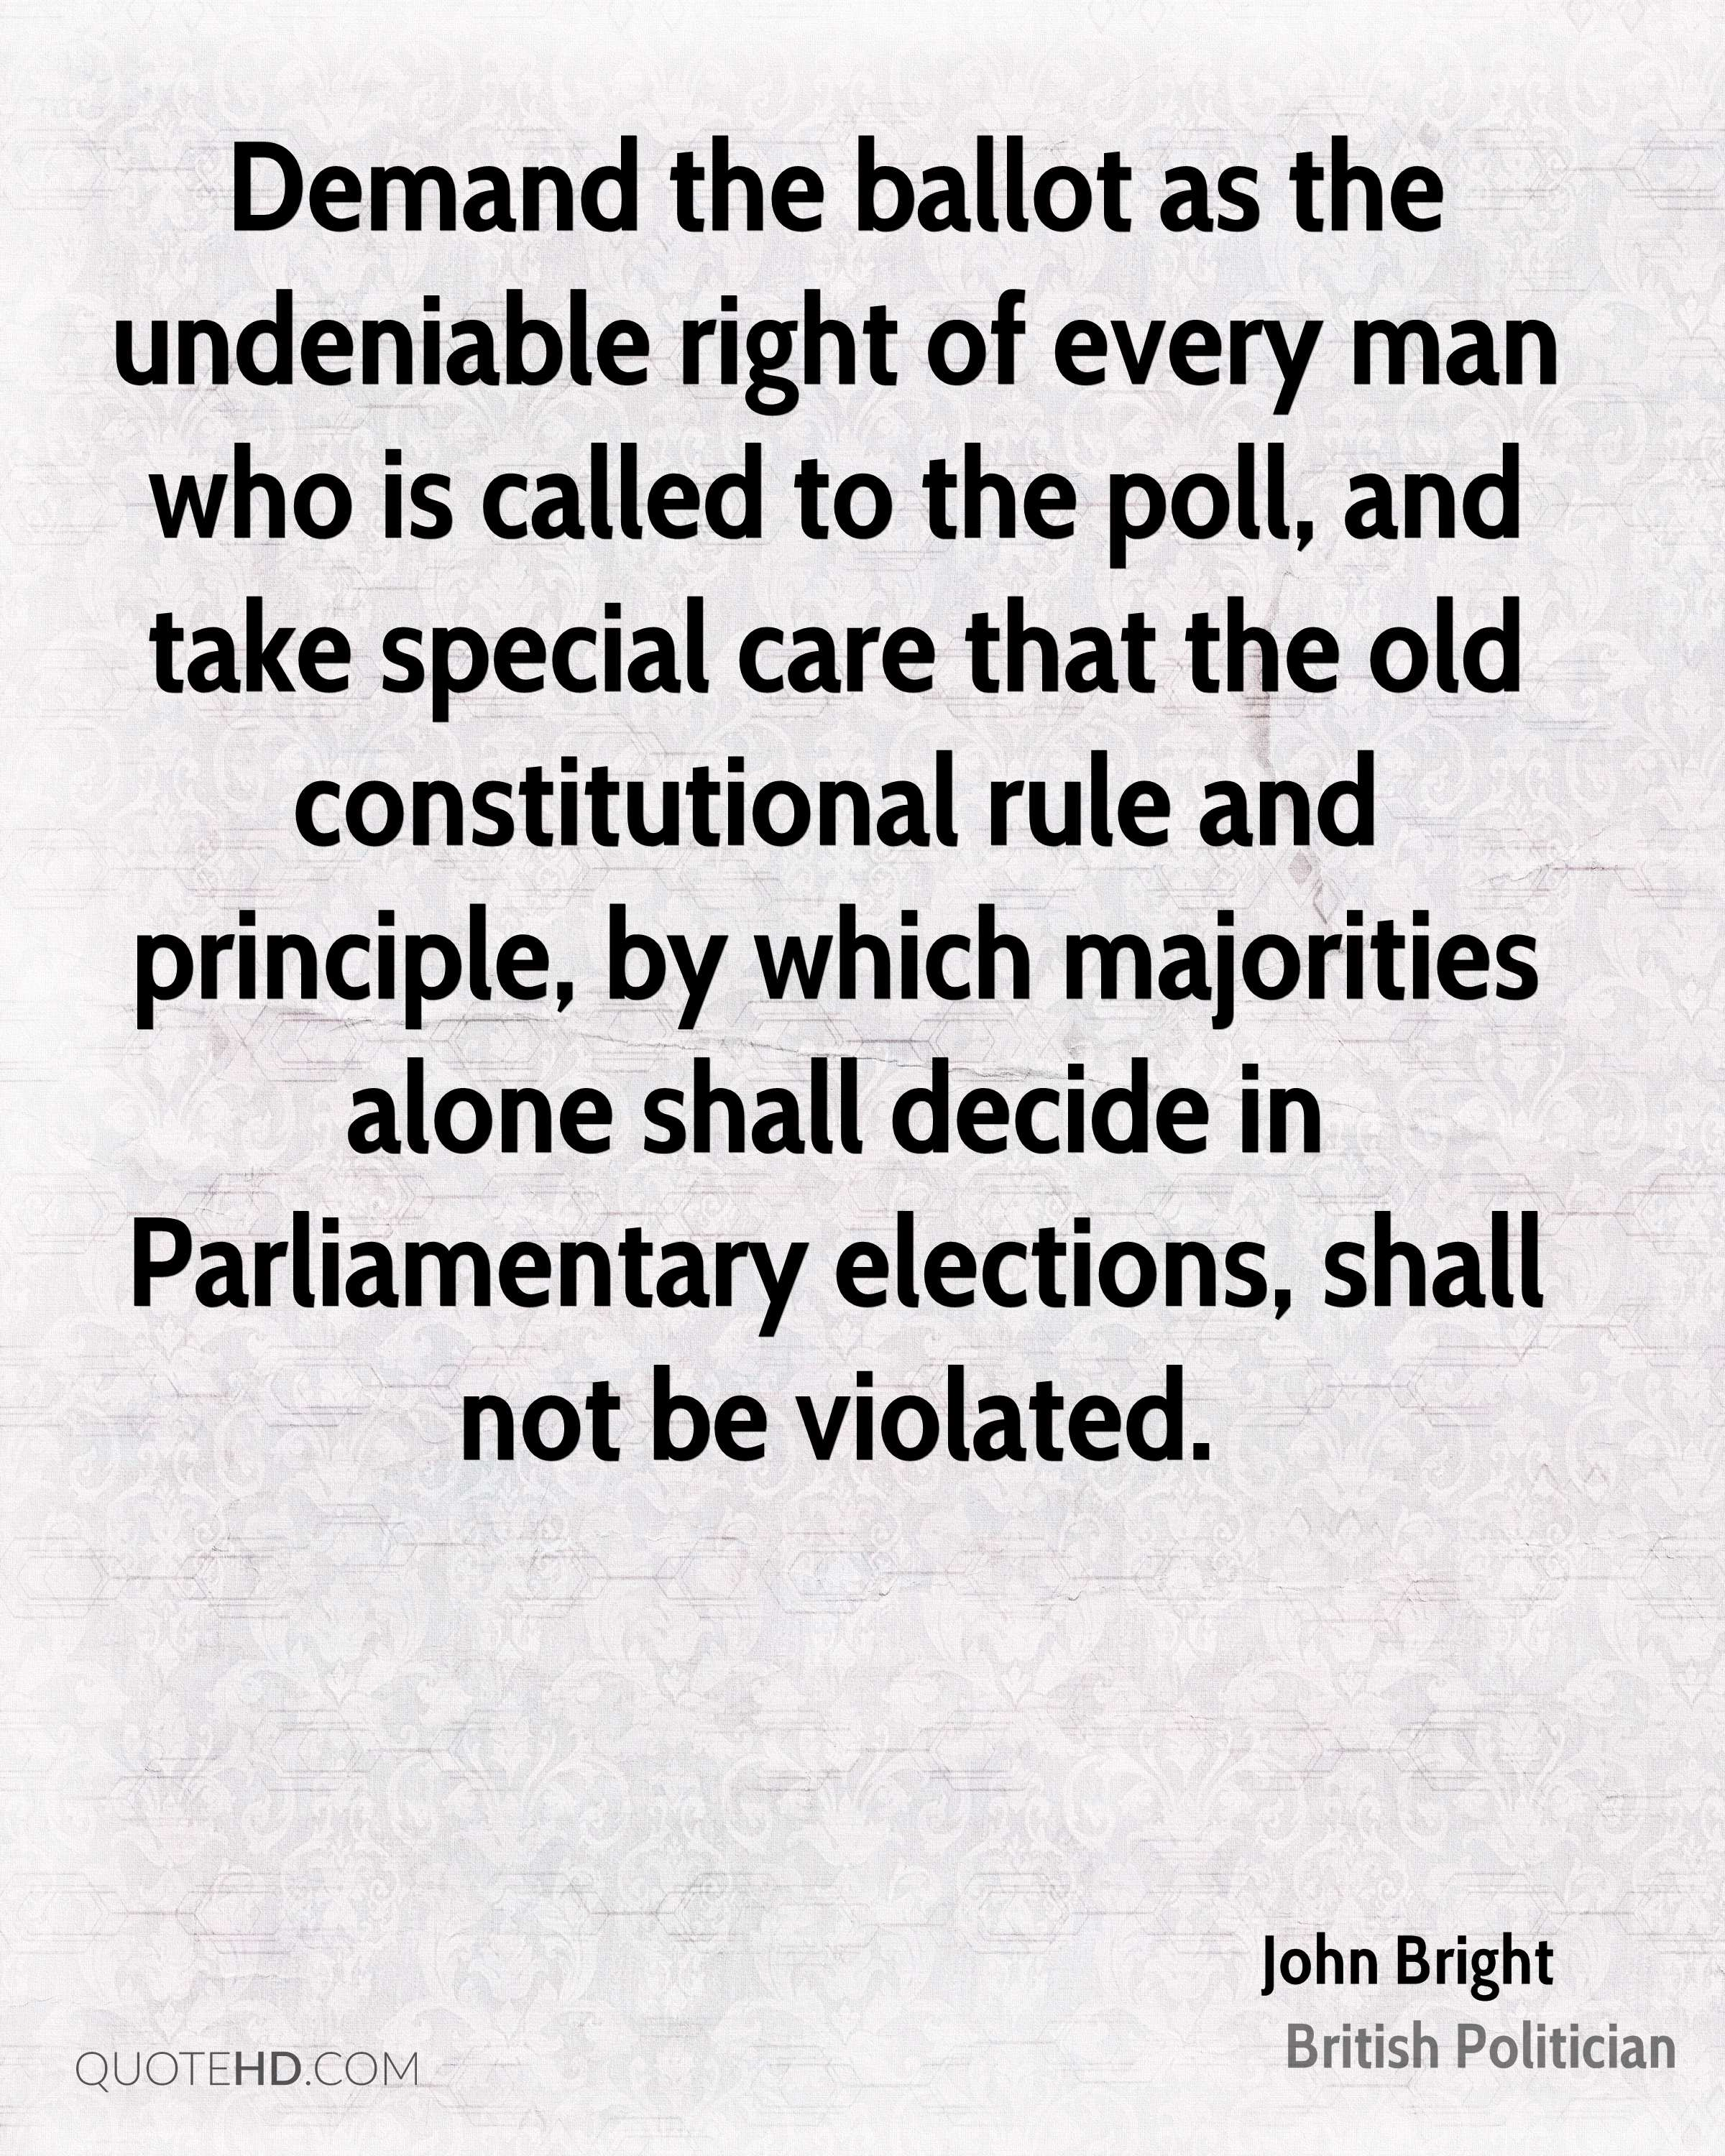 Demand the ballot as the undeniable right of every man who is called to the poll, and take special care that the old constitutional rule and principle, by which majorities alone shall decide in Parliamentary elections, shall not be violated.